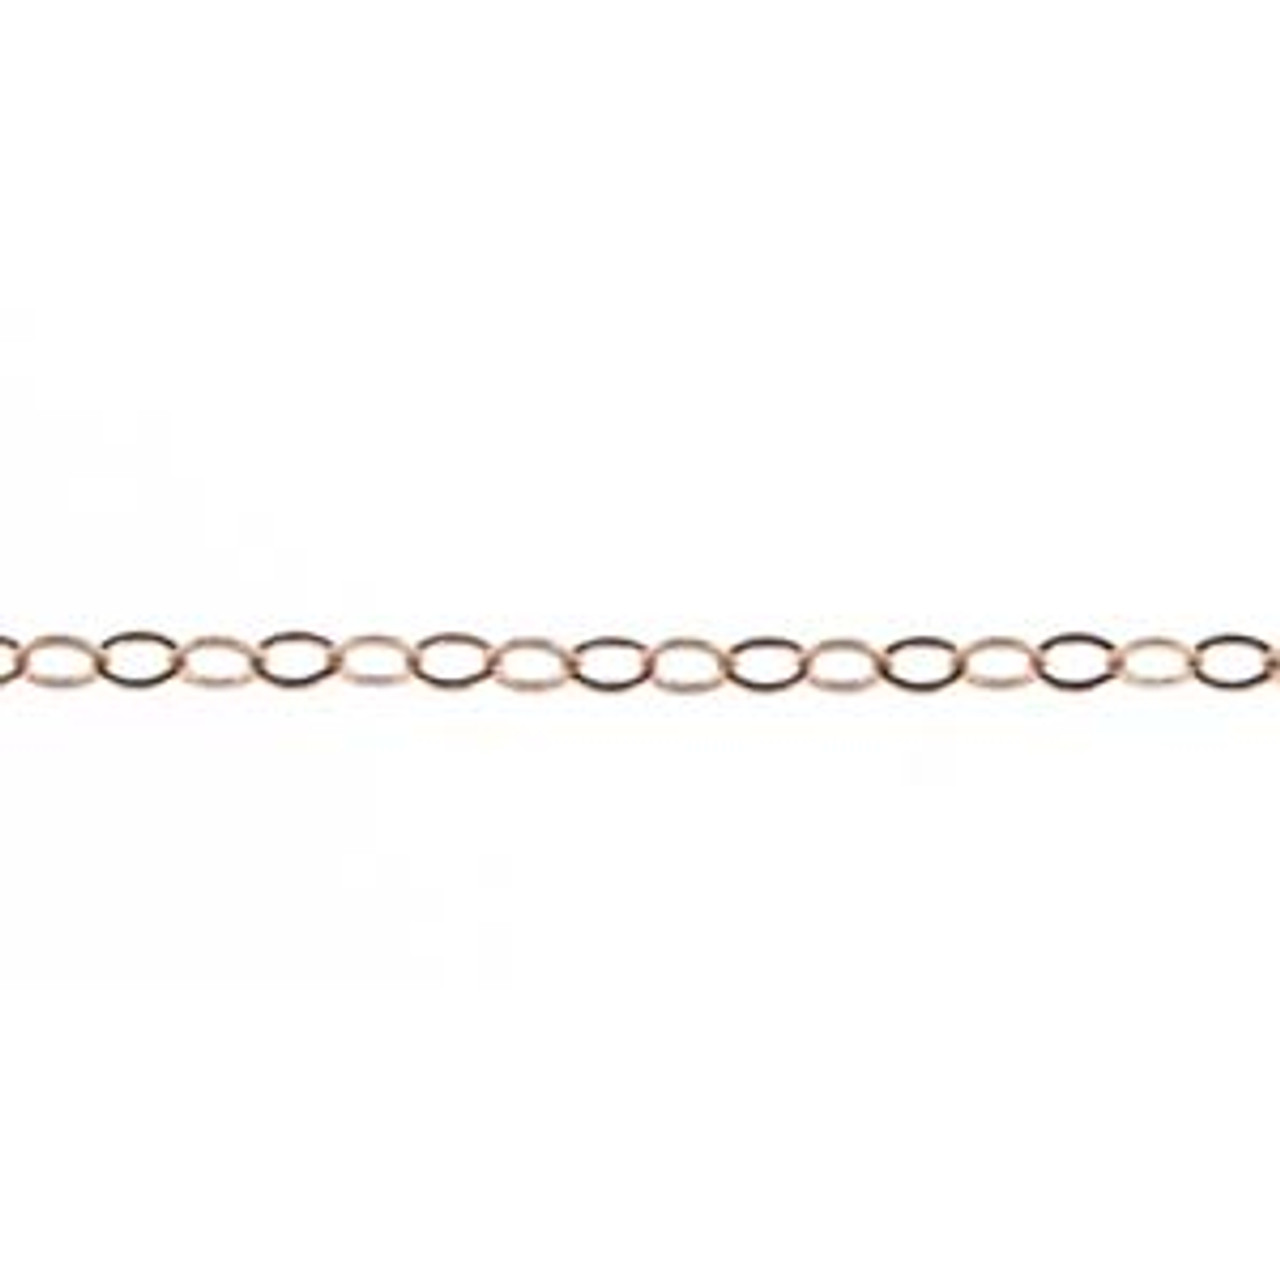 Rose Gold Plated Filled 1.4mm Flat Open Chain - Per Foot